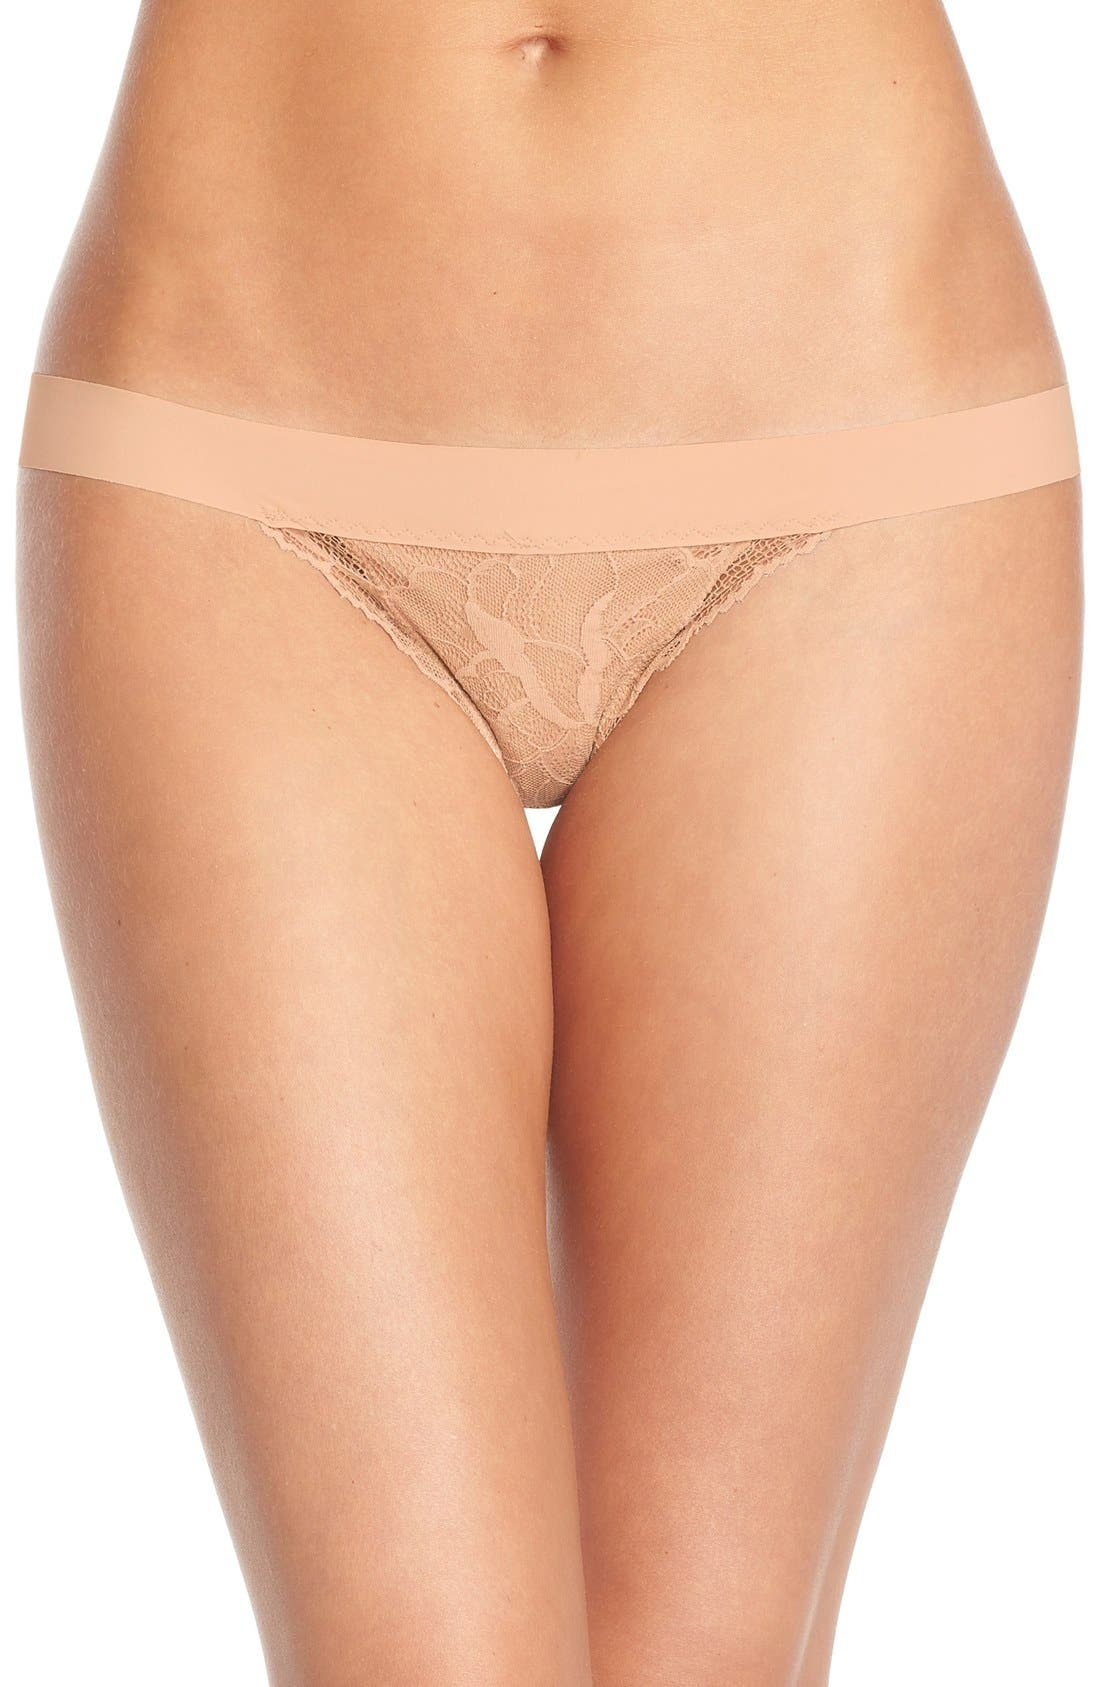 'Double Take' Lace G-String Thong,                             Main thumbnail 3, color,